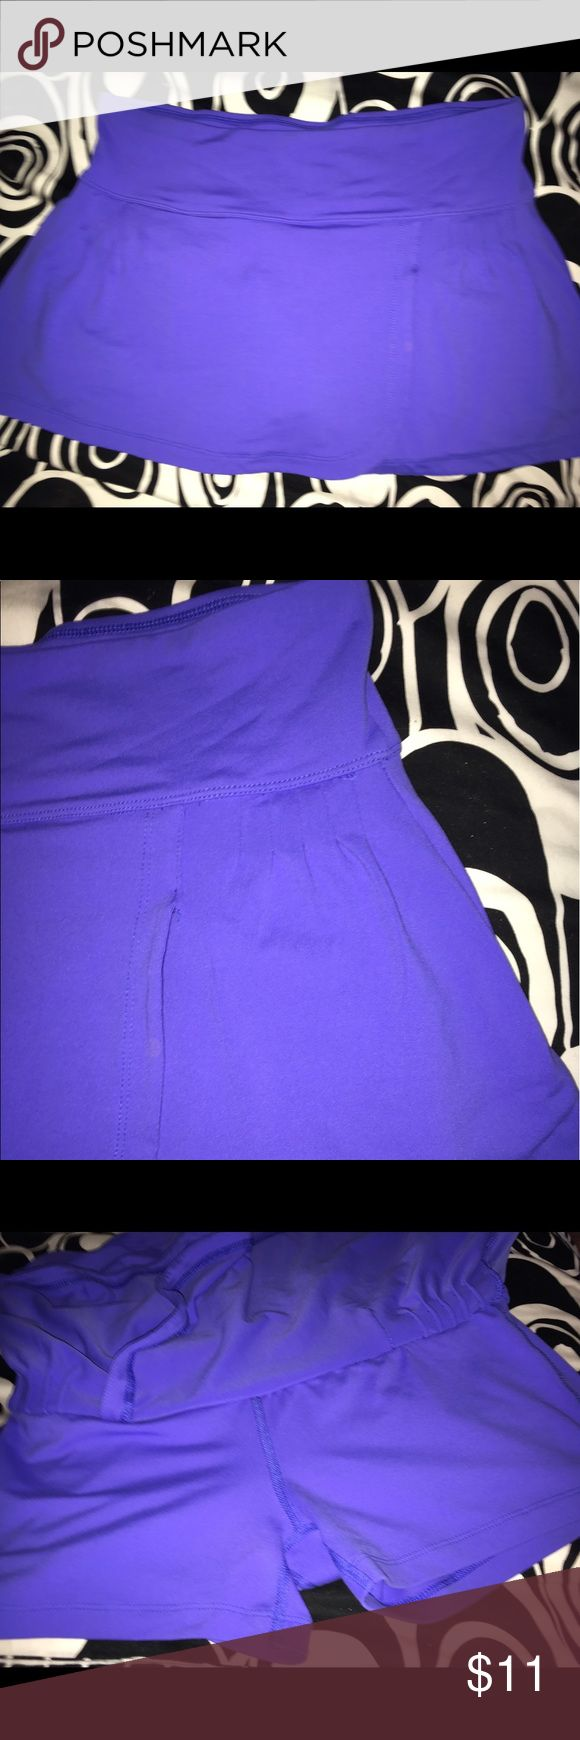 💜90 DEGREES BY REFLEX TENNIS SKIRT💜 💜I JUST CAN'T GET MYSELF TO WEAR THIS TO TENNIS...I DON'T KNOW WHY I FEEL FUNNY IN THESE...IT'S JUST ME....SO IT'S NEVER BEEN ON. 90 Degrees By Reflex Skirts Mini